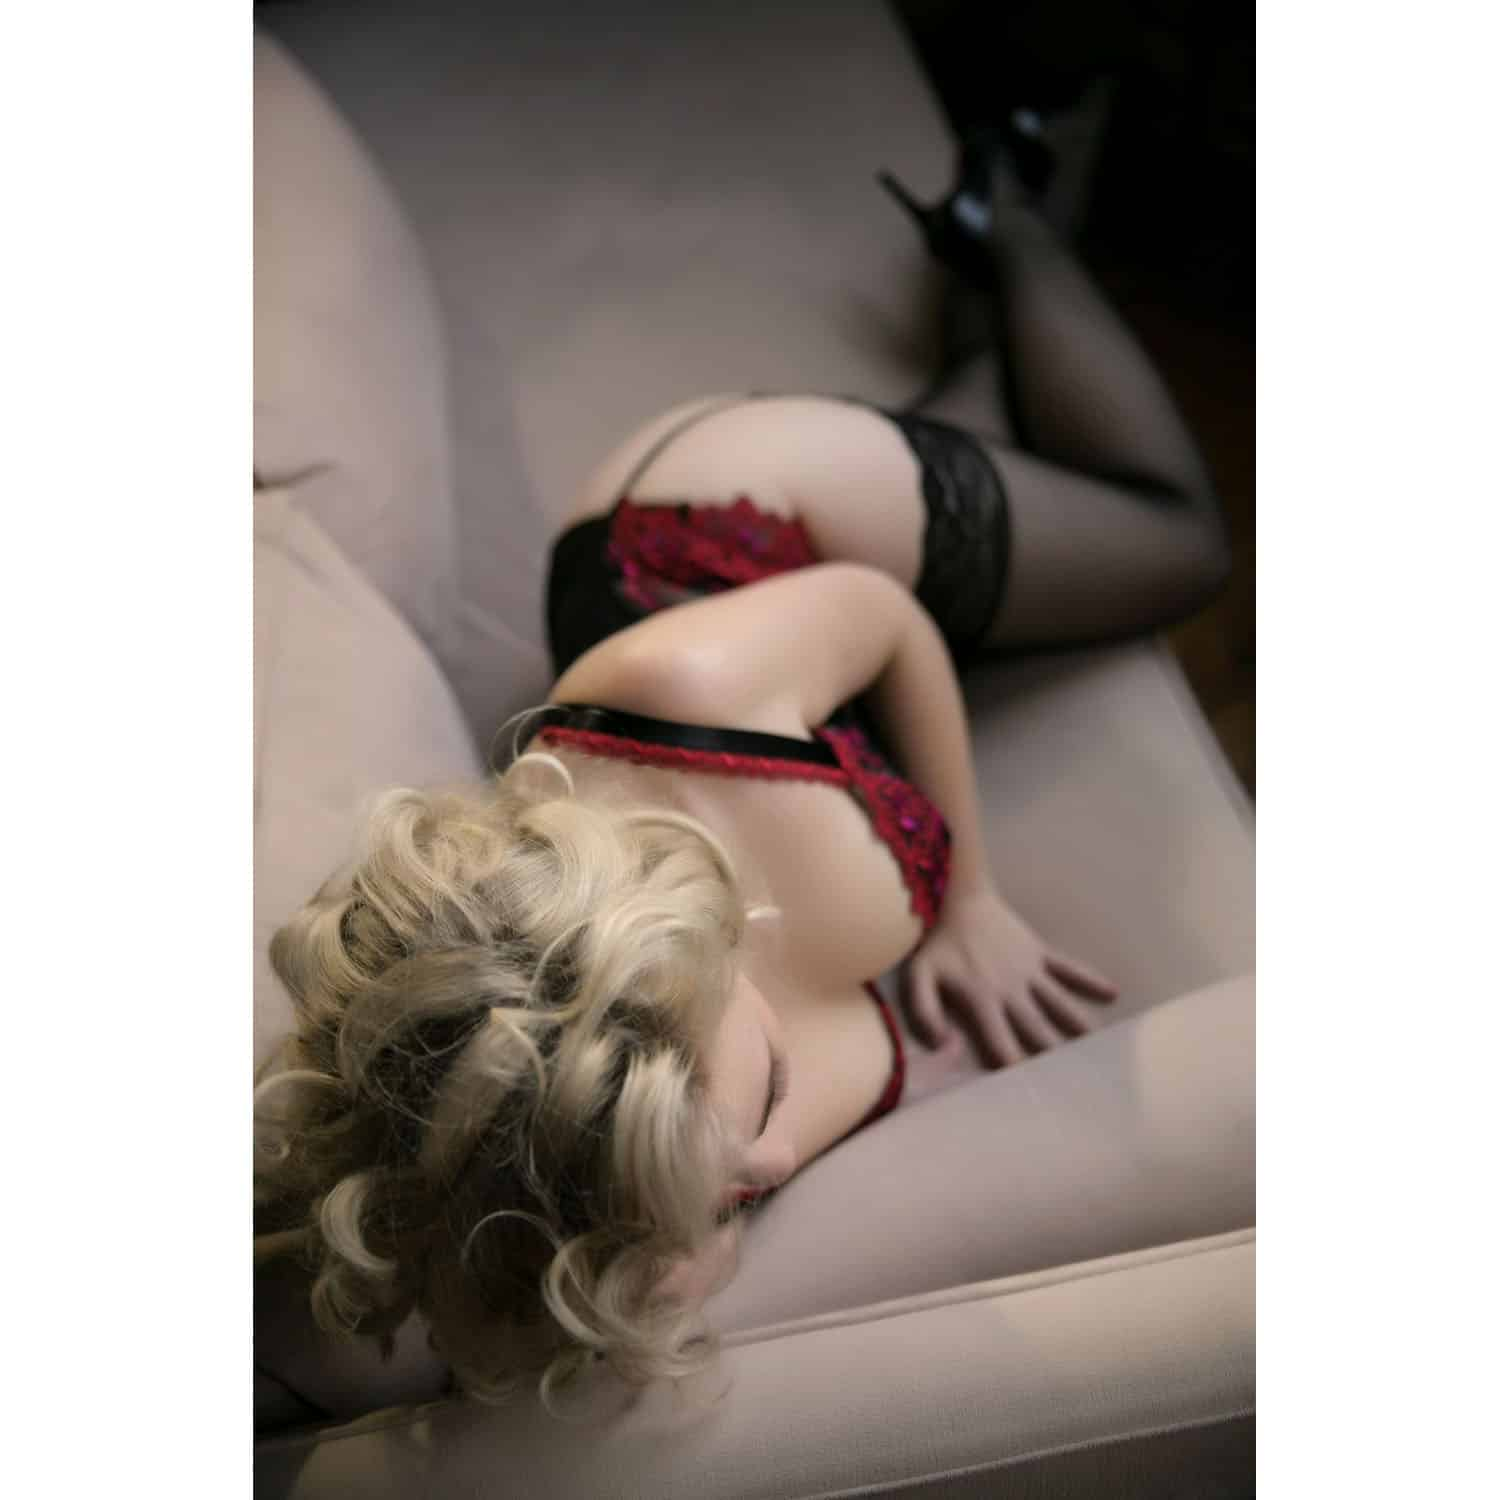 OWN Boudoir's color portrait of a woman in red lingerie lying on a sofa